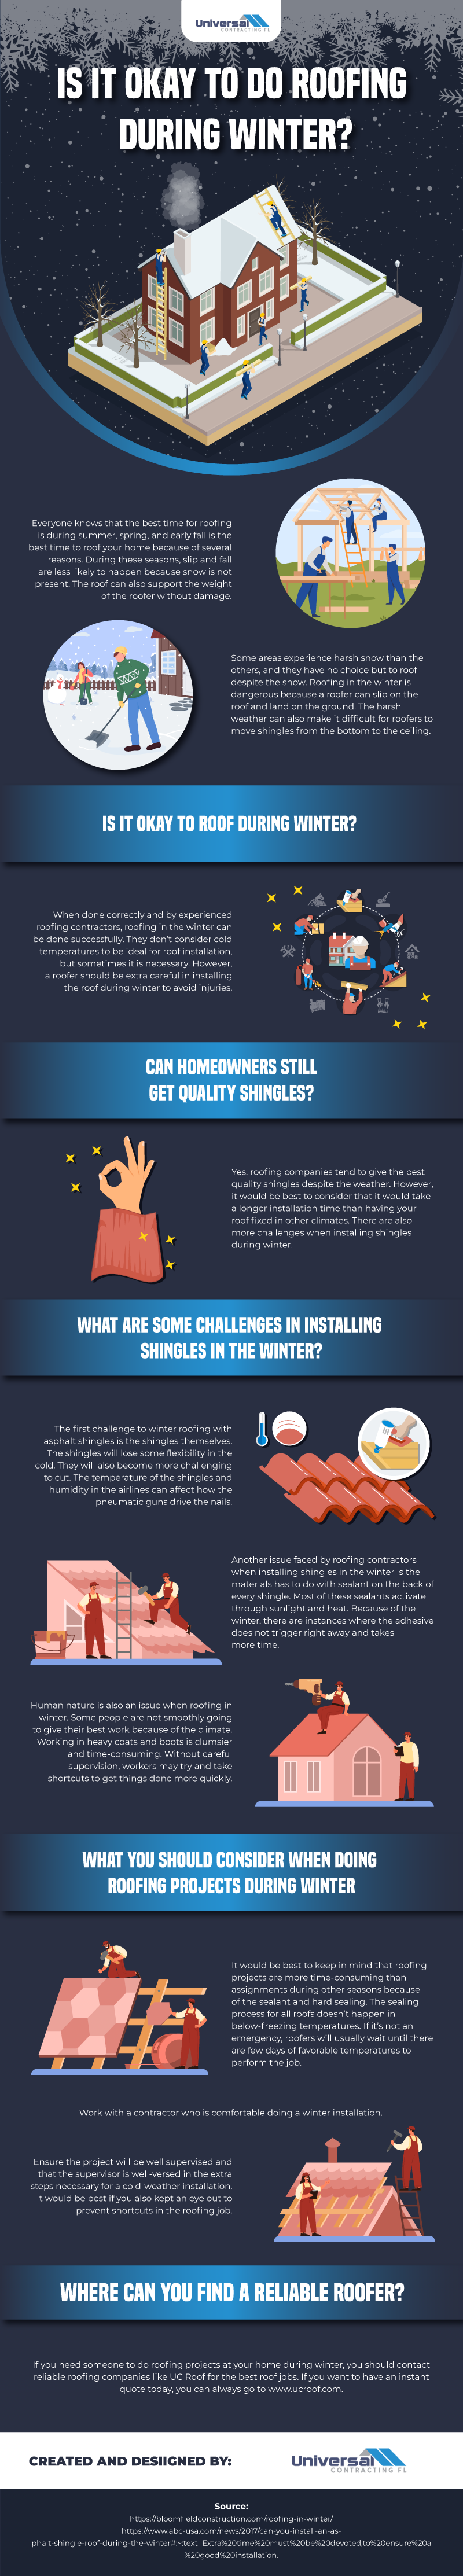 Is it okay to do roofing during winter?